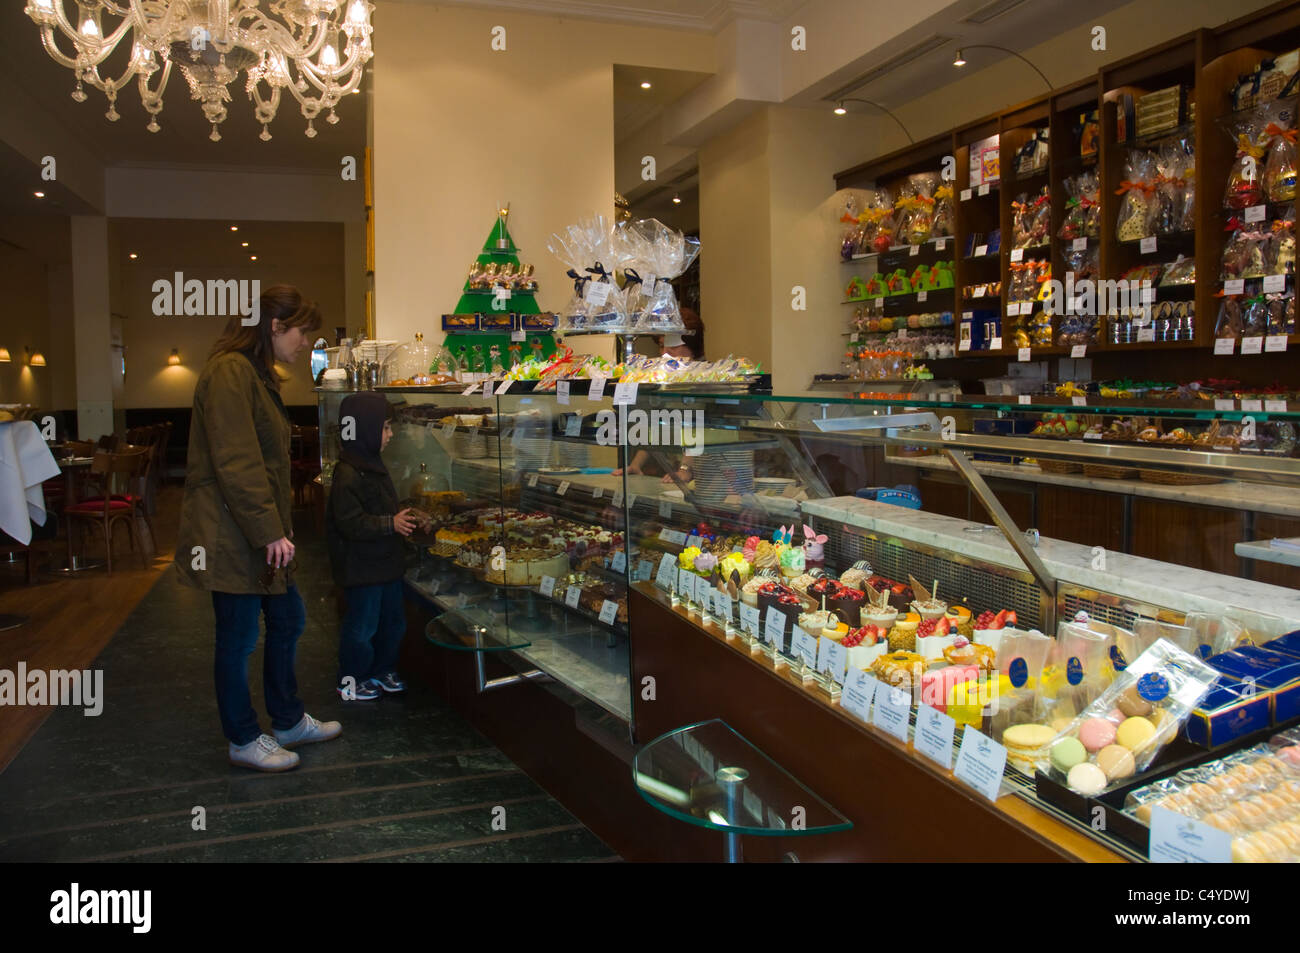 Chocolate Sweets Shop Stock Photos & Chocolate Sweets Shop Stock ...